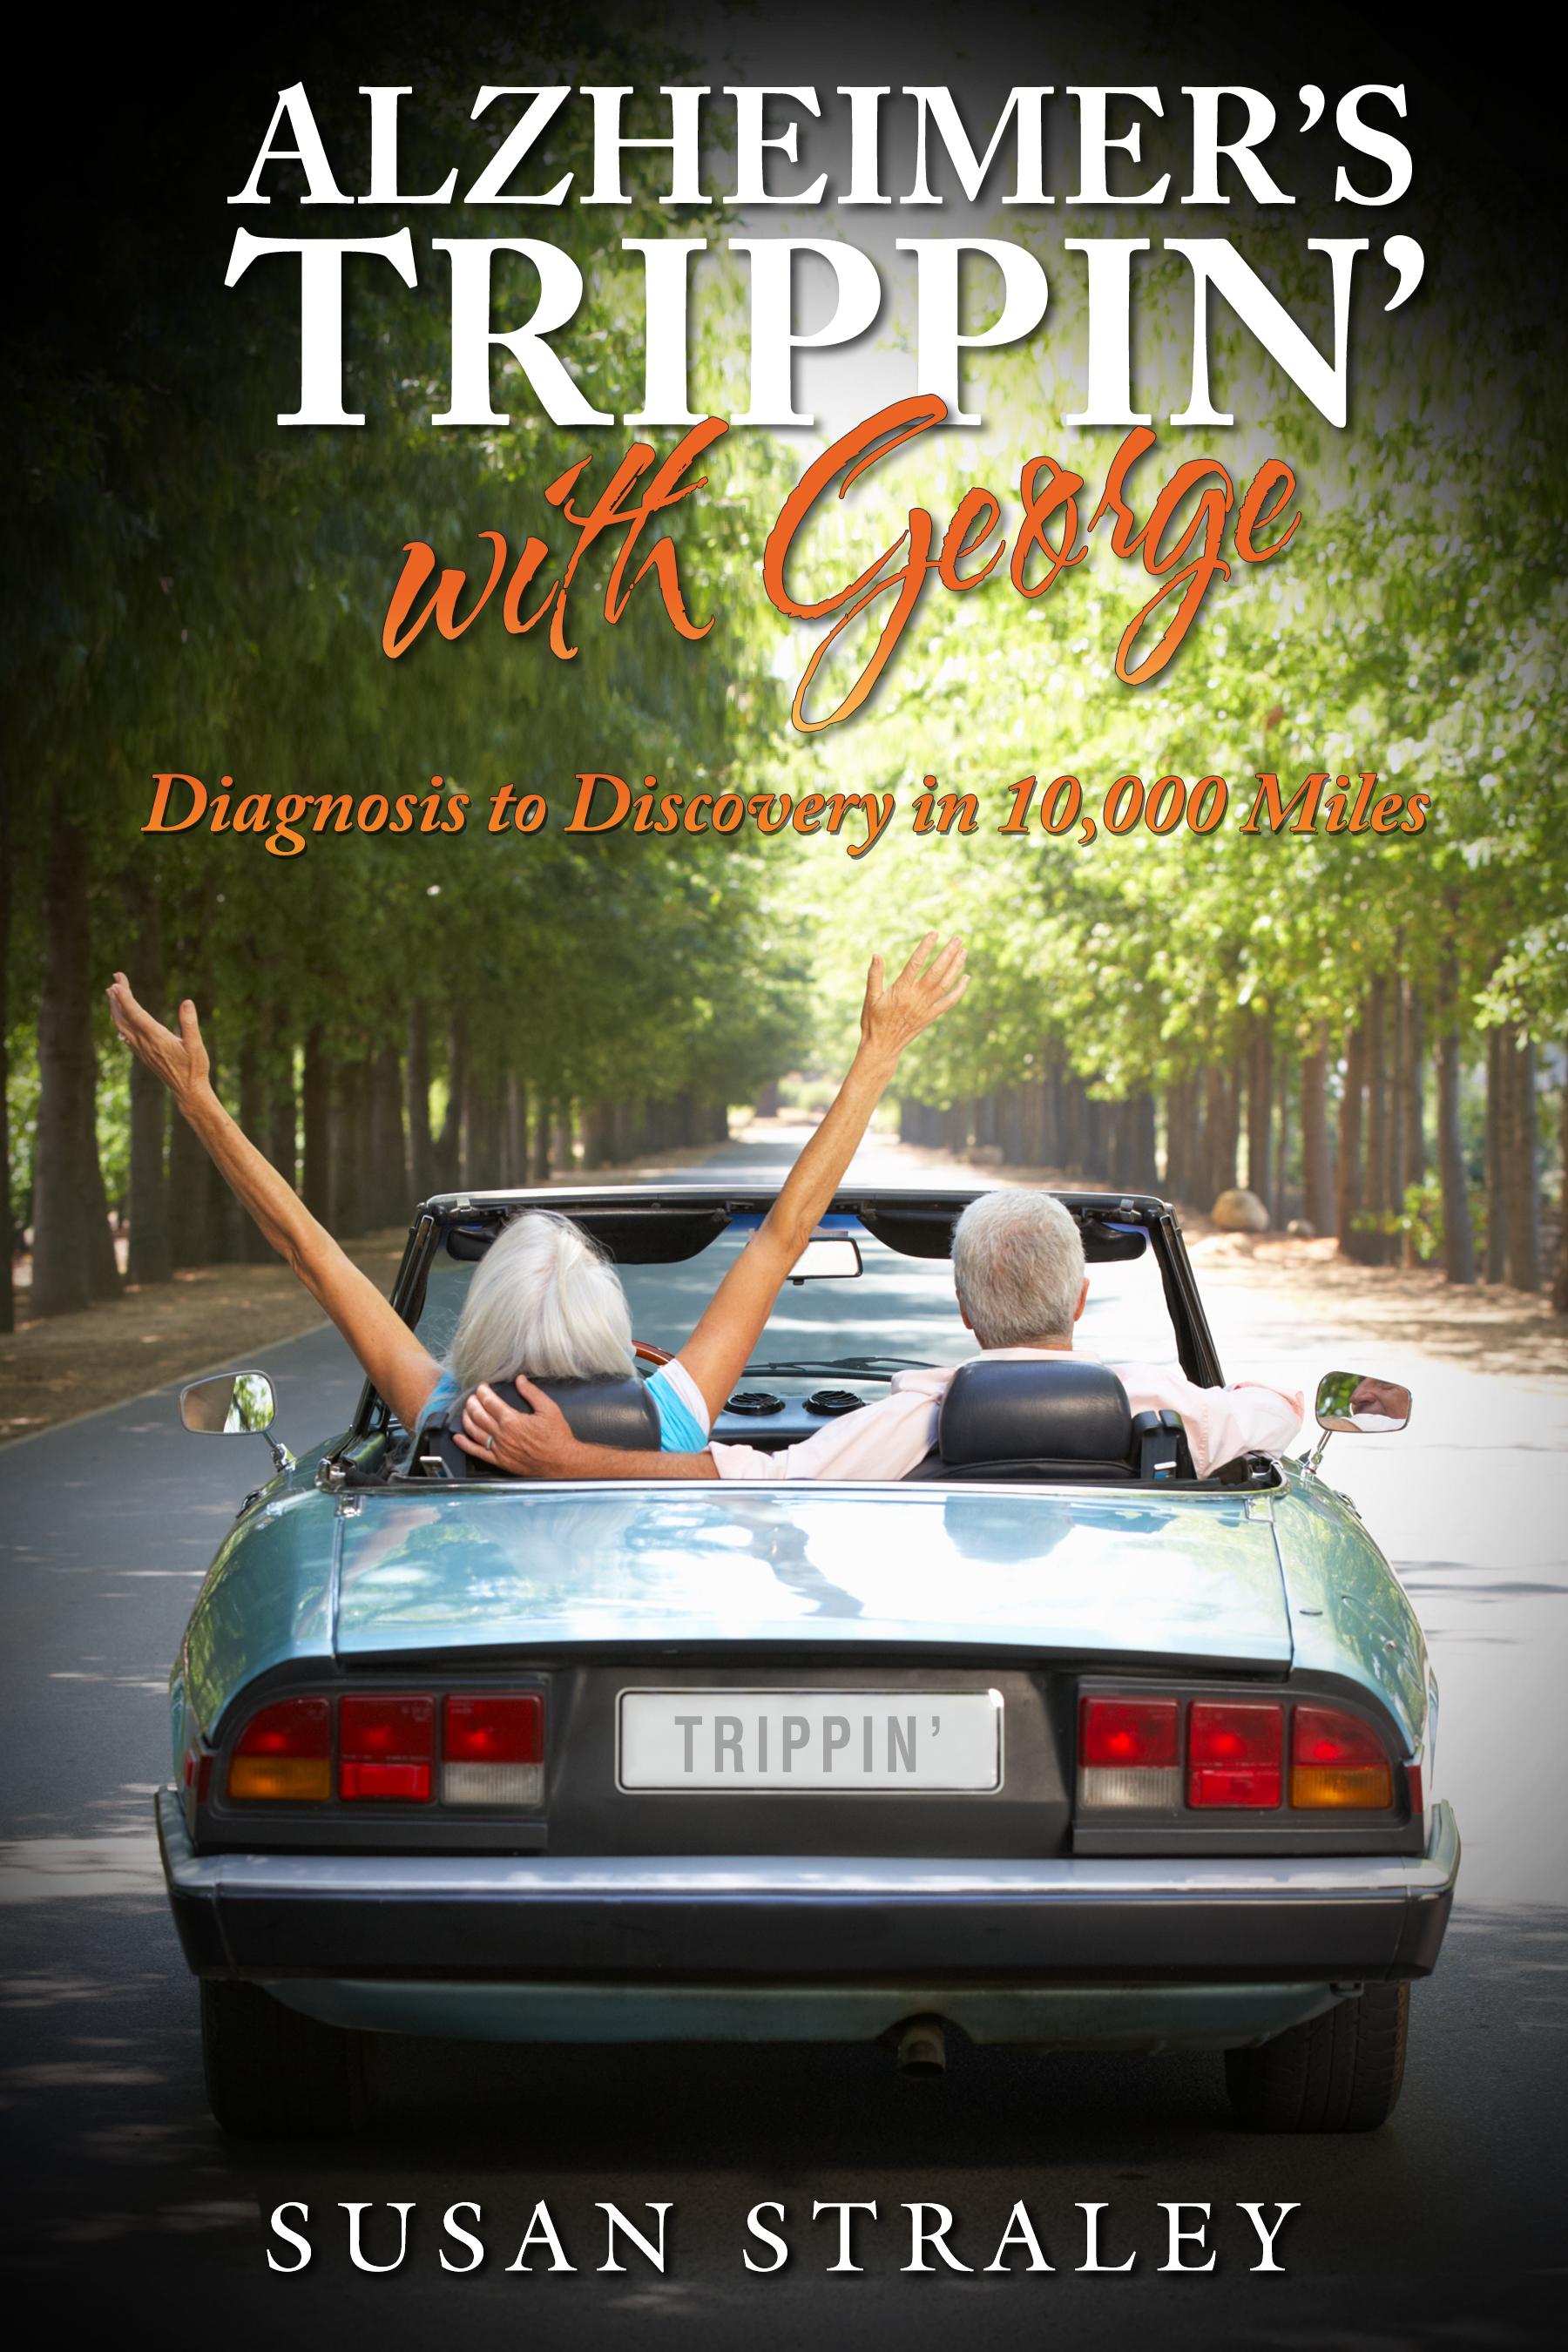 Alzheimer's Trippin' with George - Diagnosis to Discovery in 10,000 Miles